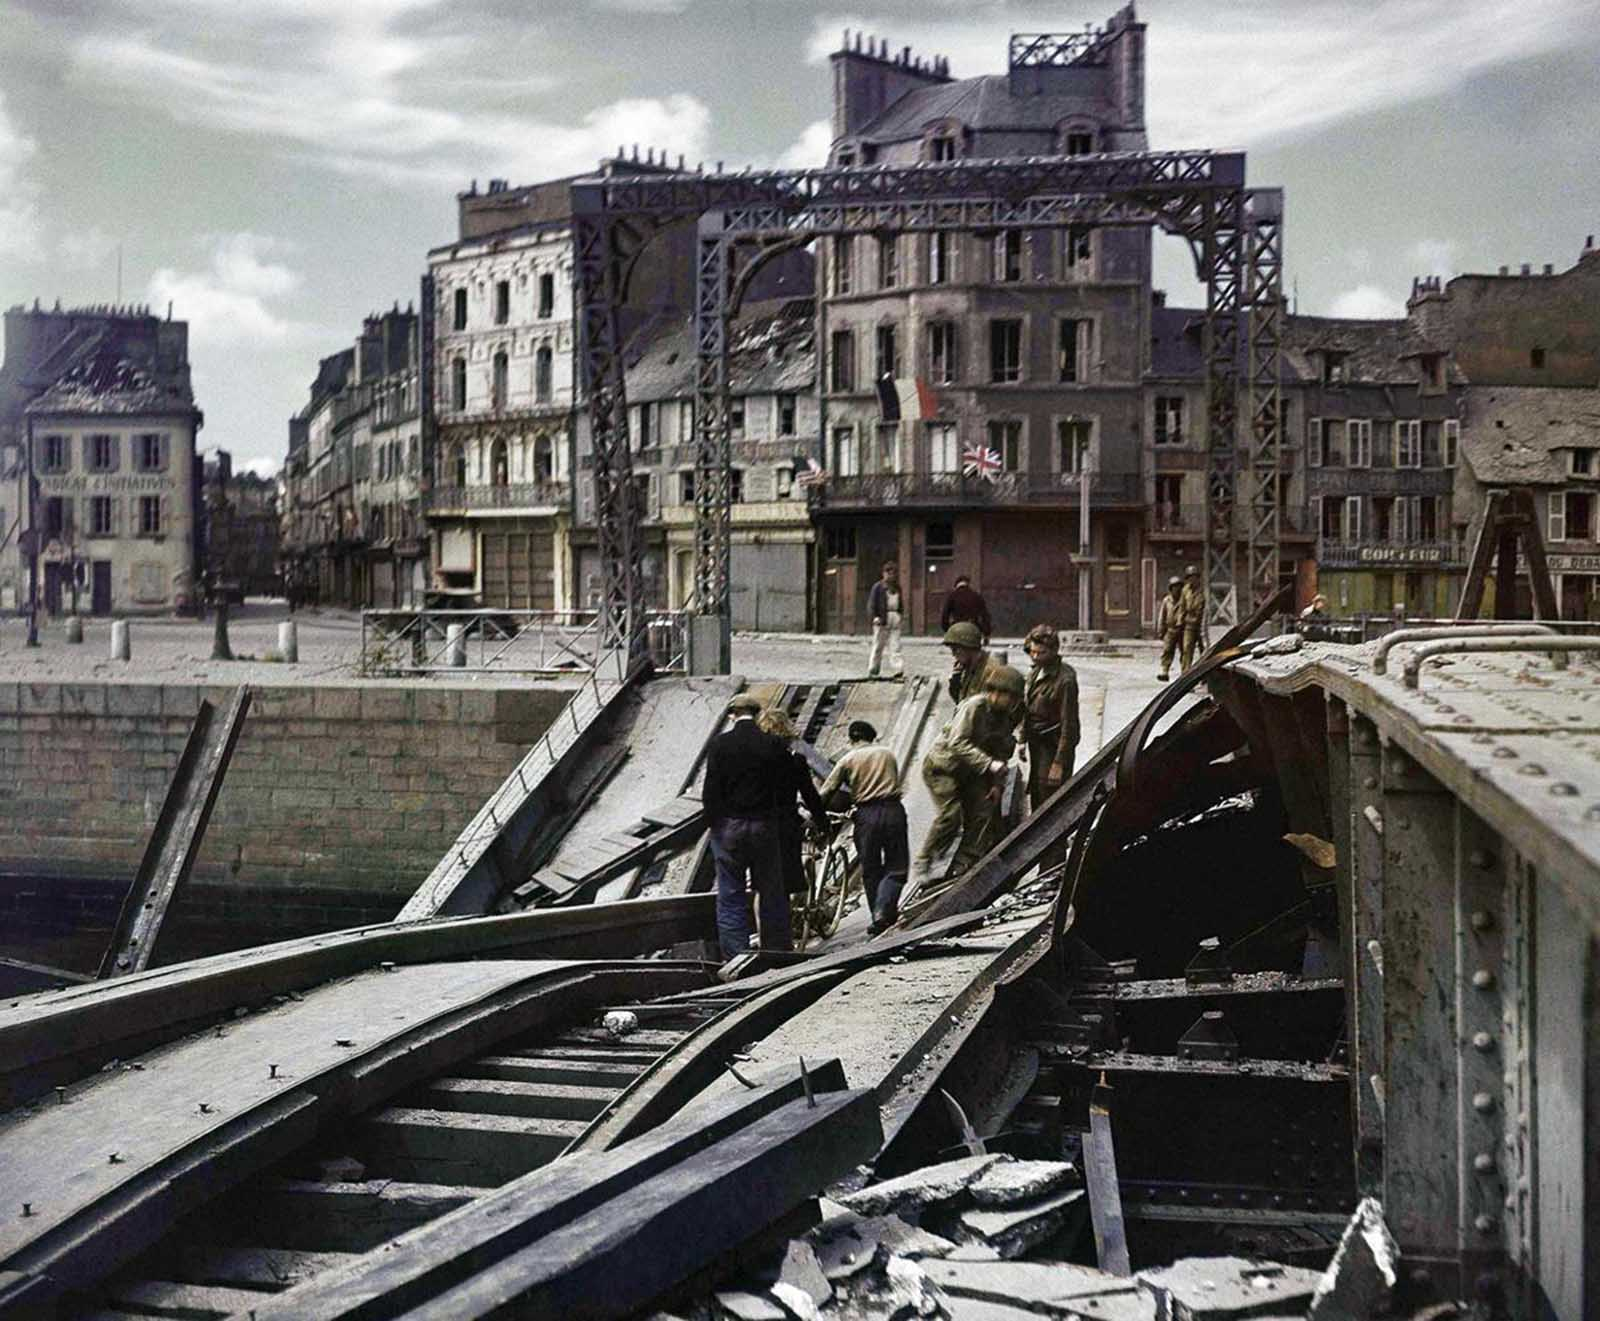 People try to cross a damaged bridge in Cherbourg, France on July 27, 1944.